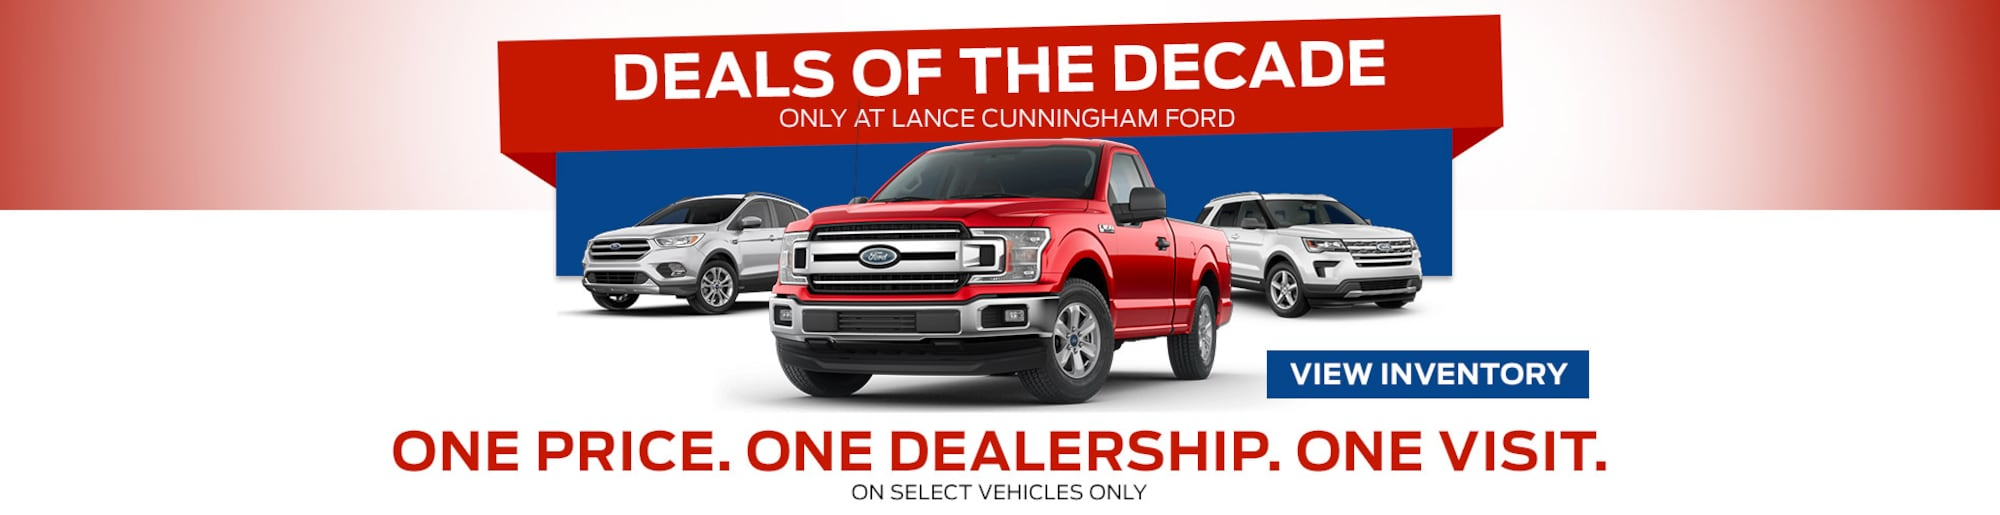 New Ford Used Car Dealer Service In Knoxville Tn Lance 2004 Pick Up Engine Parts Diagram Previous Next